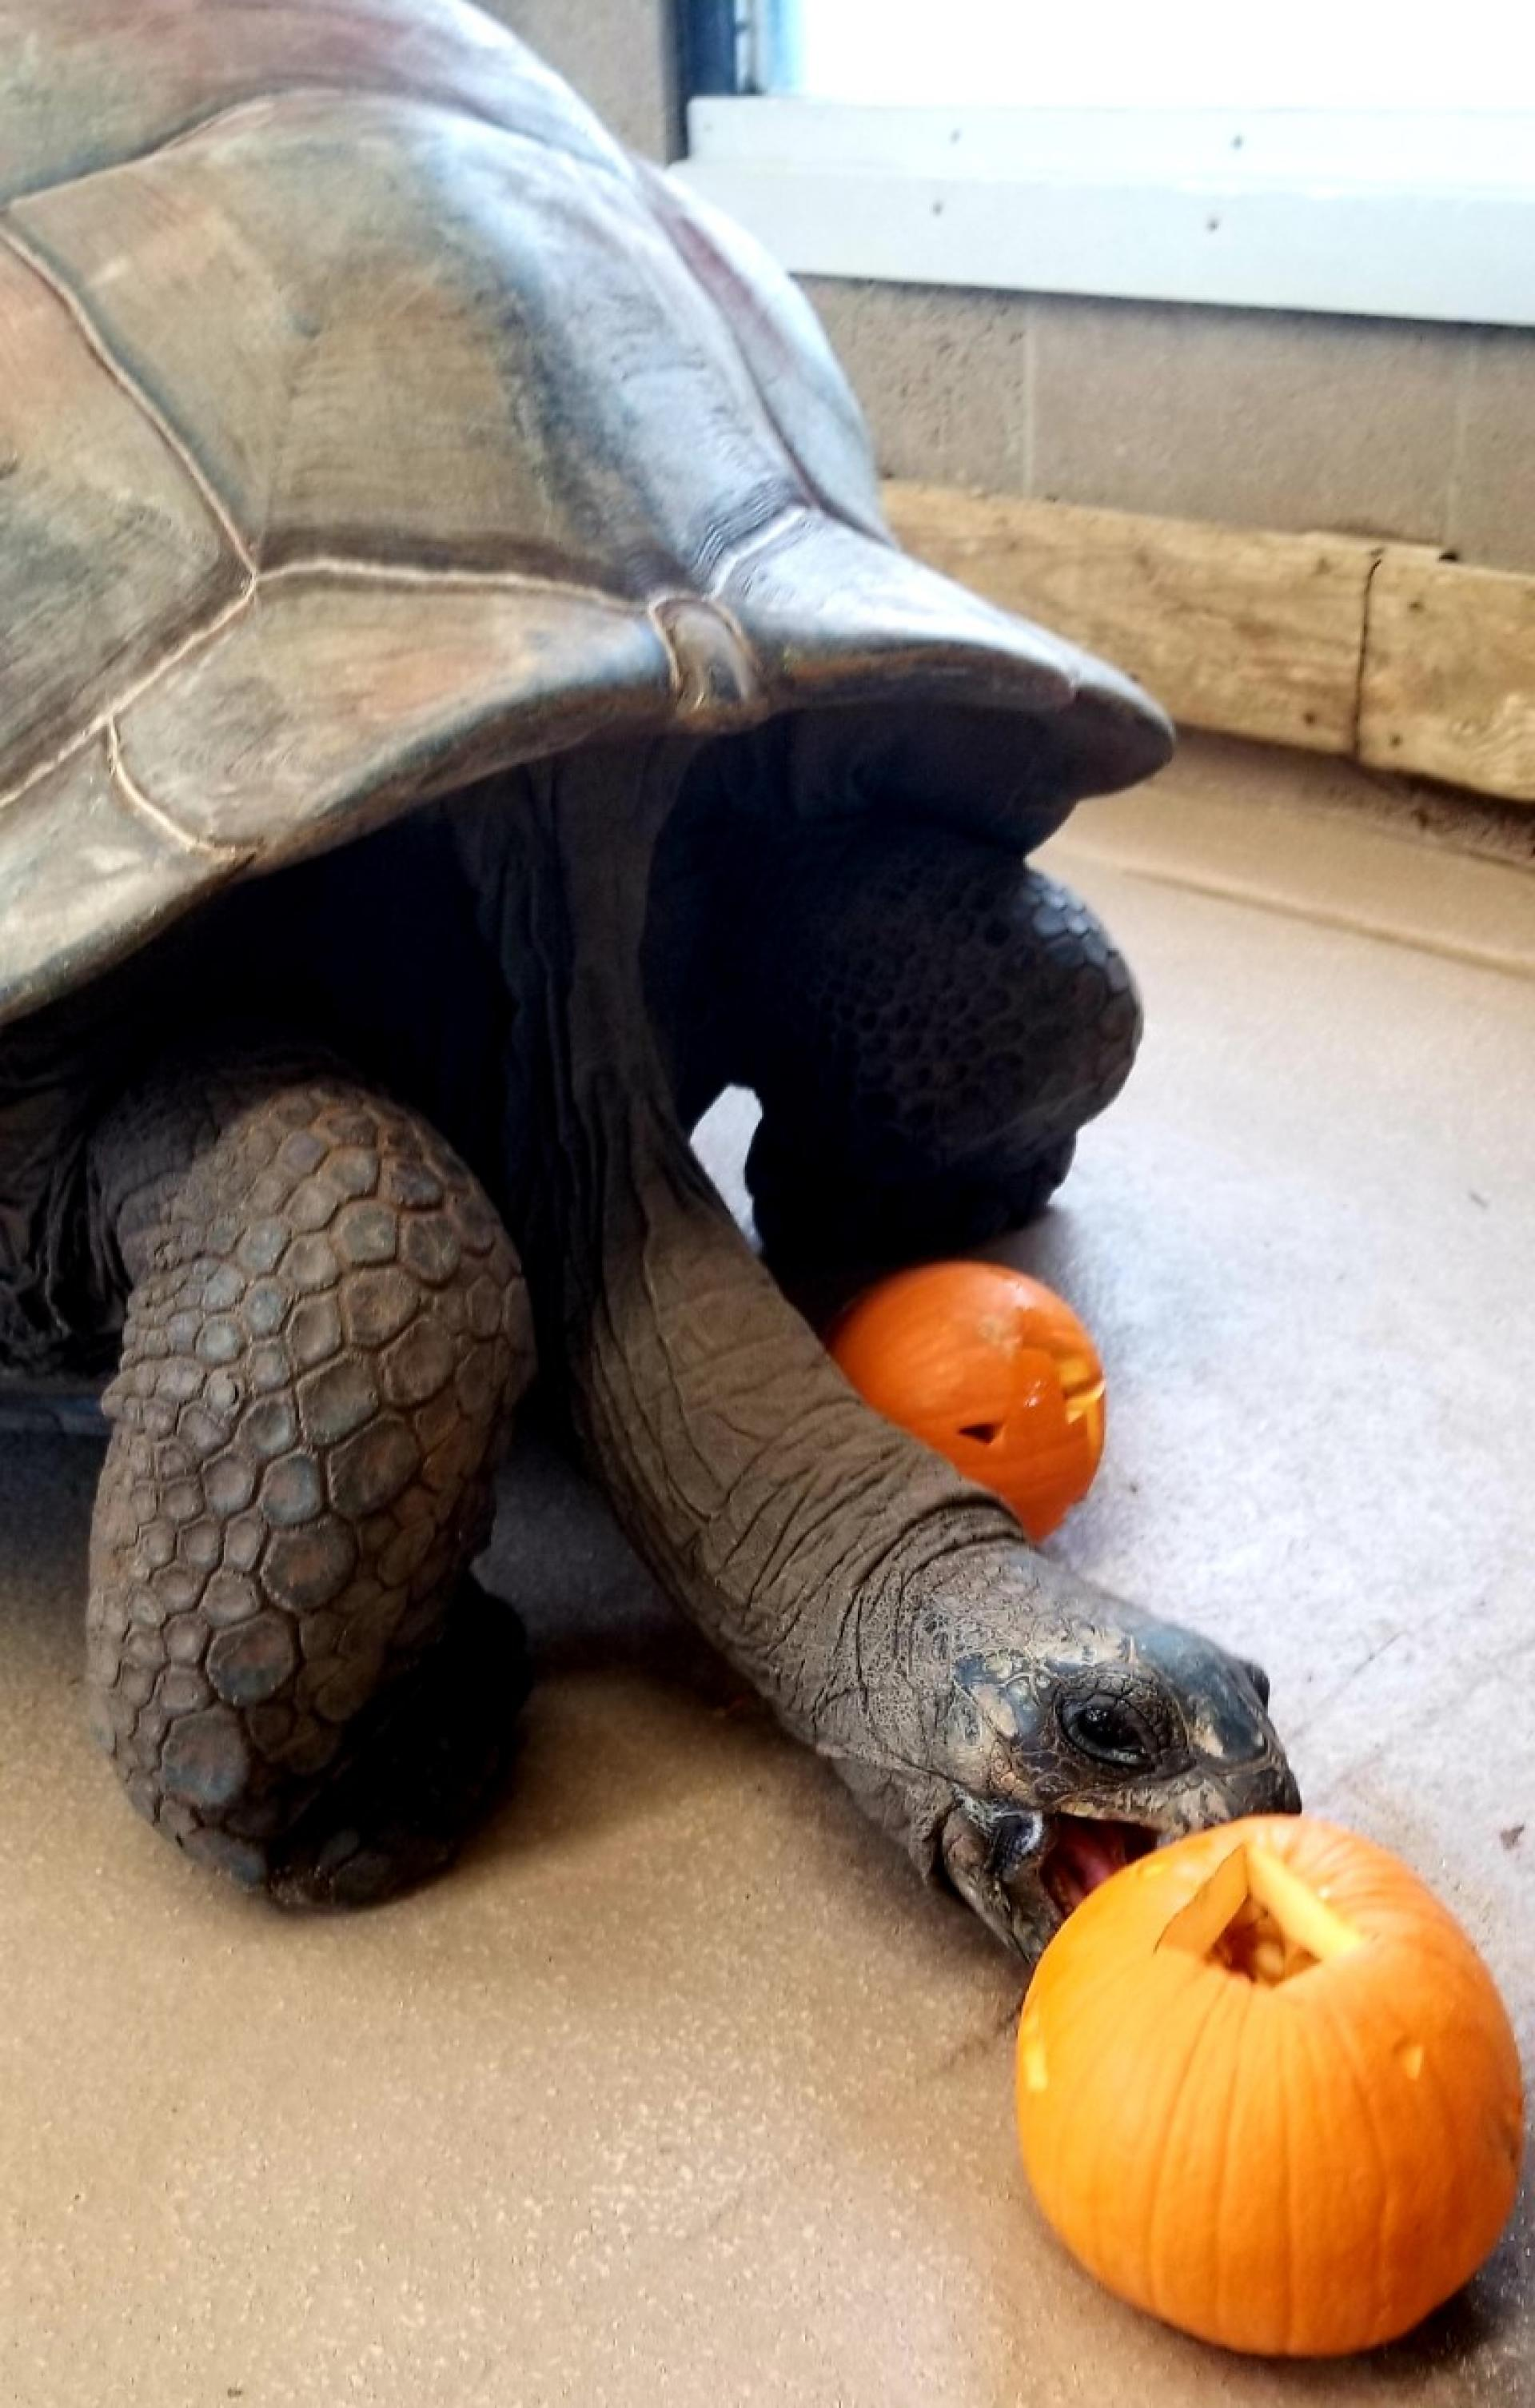 A giant tortoise at the Tulsa Zoo, workplace of North Central College graduate and veteran Eddie Exconde.